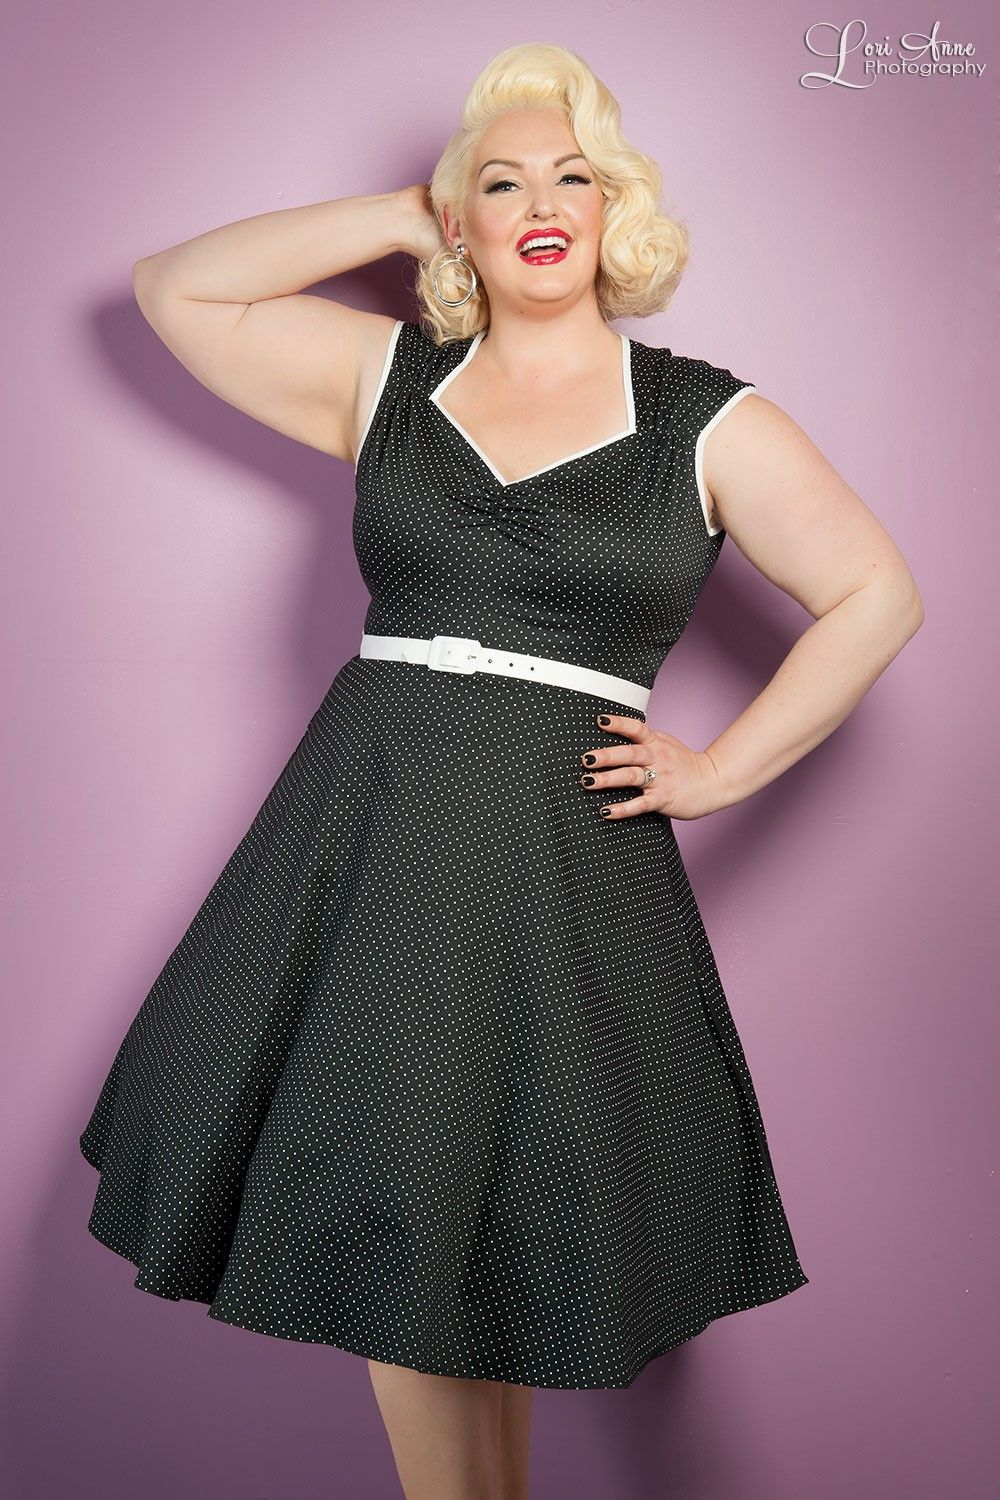 plus size pin up girl dresses image collections - dresses design ideas